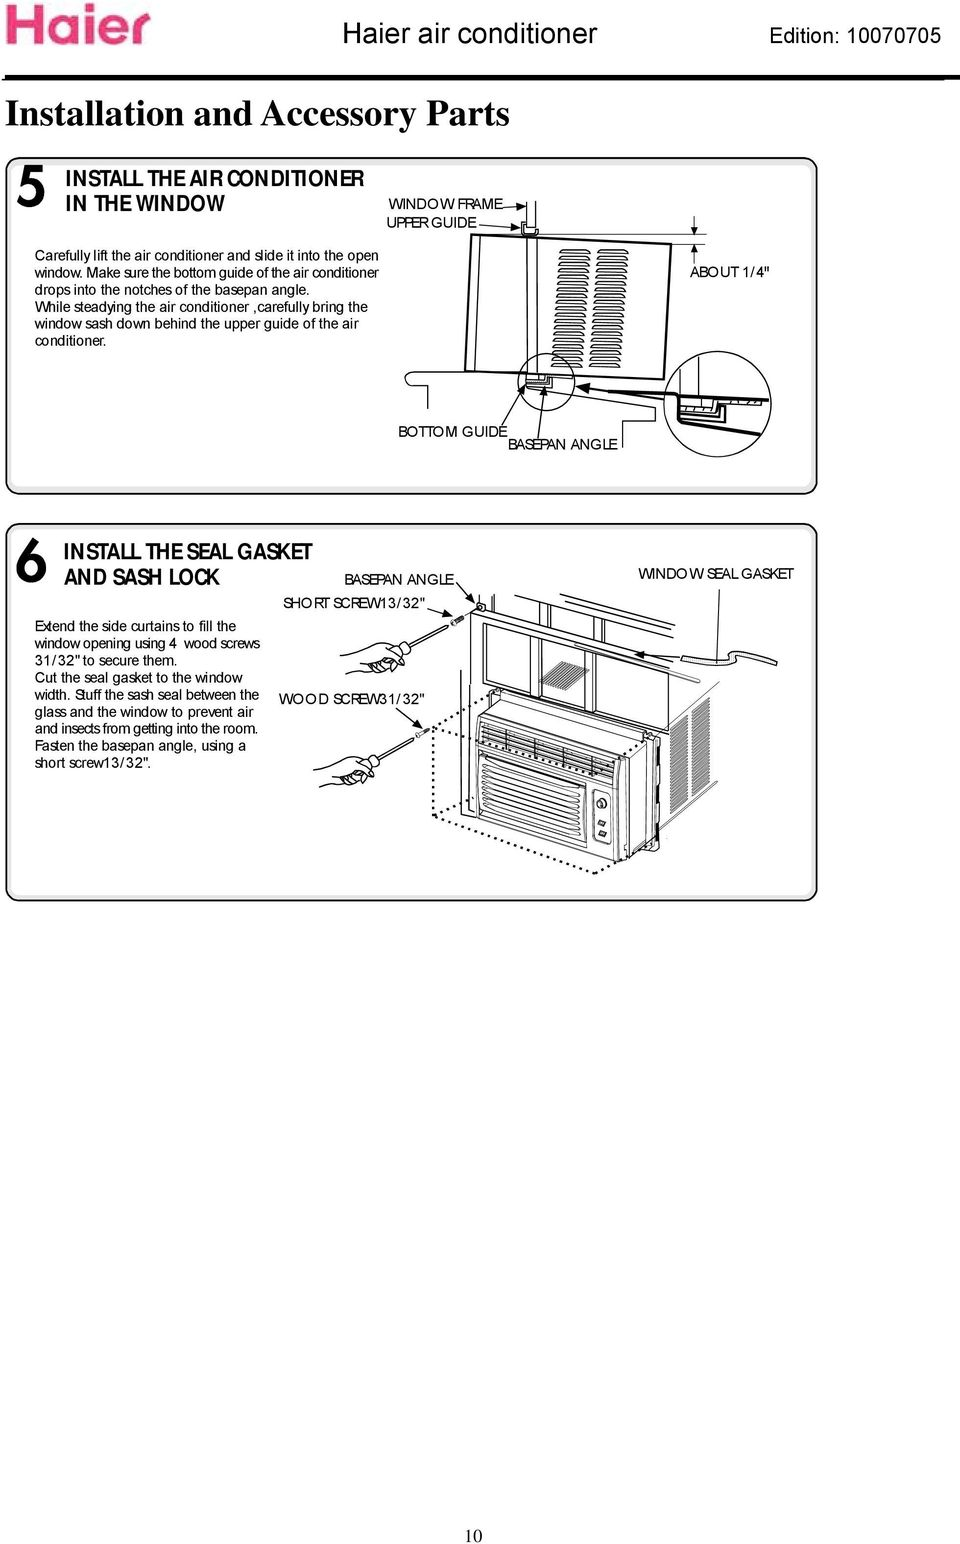 Service Manual Domestic Air Conditioner Model Feature Hw 05ln03 Pdf Haier Handler Wiring Diagrams While Steadying The Conditionercarefully Bring Window Sash Down Behind Upper Guide